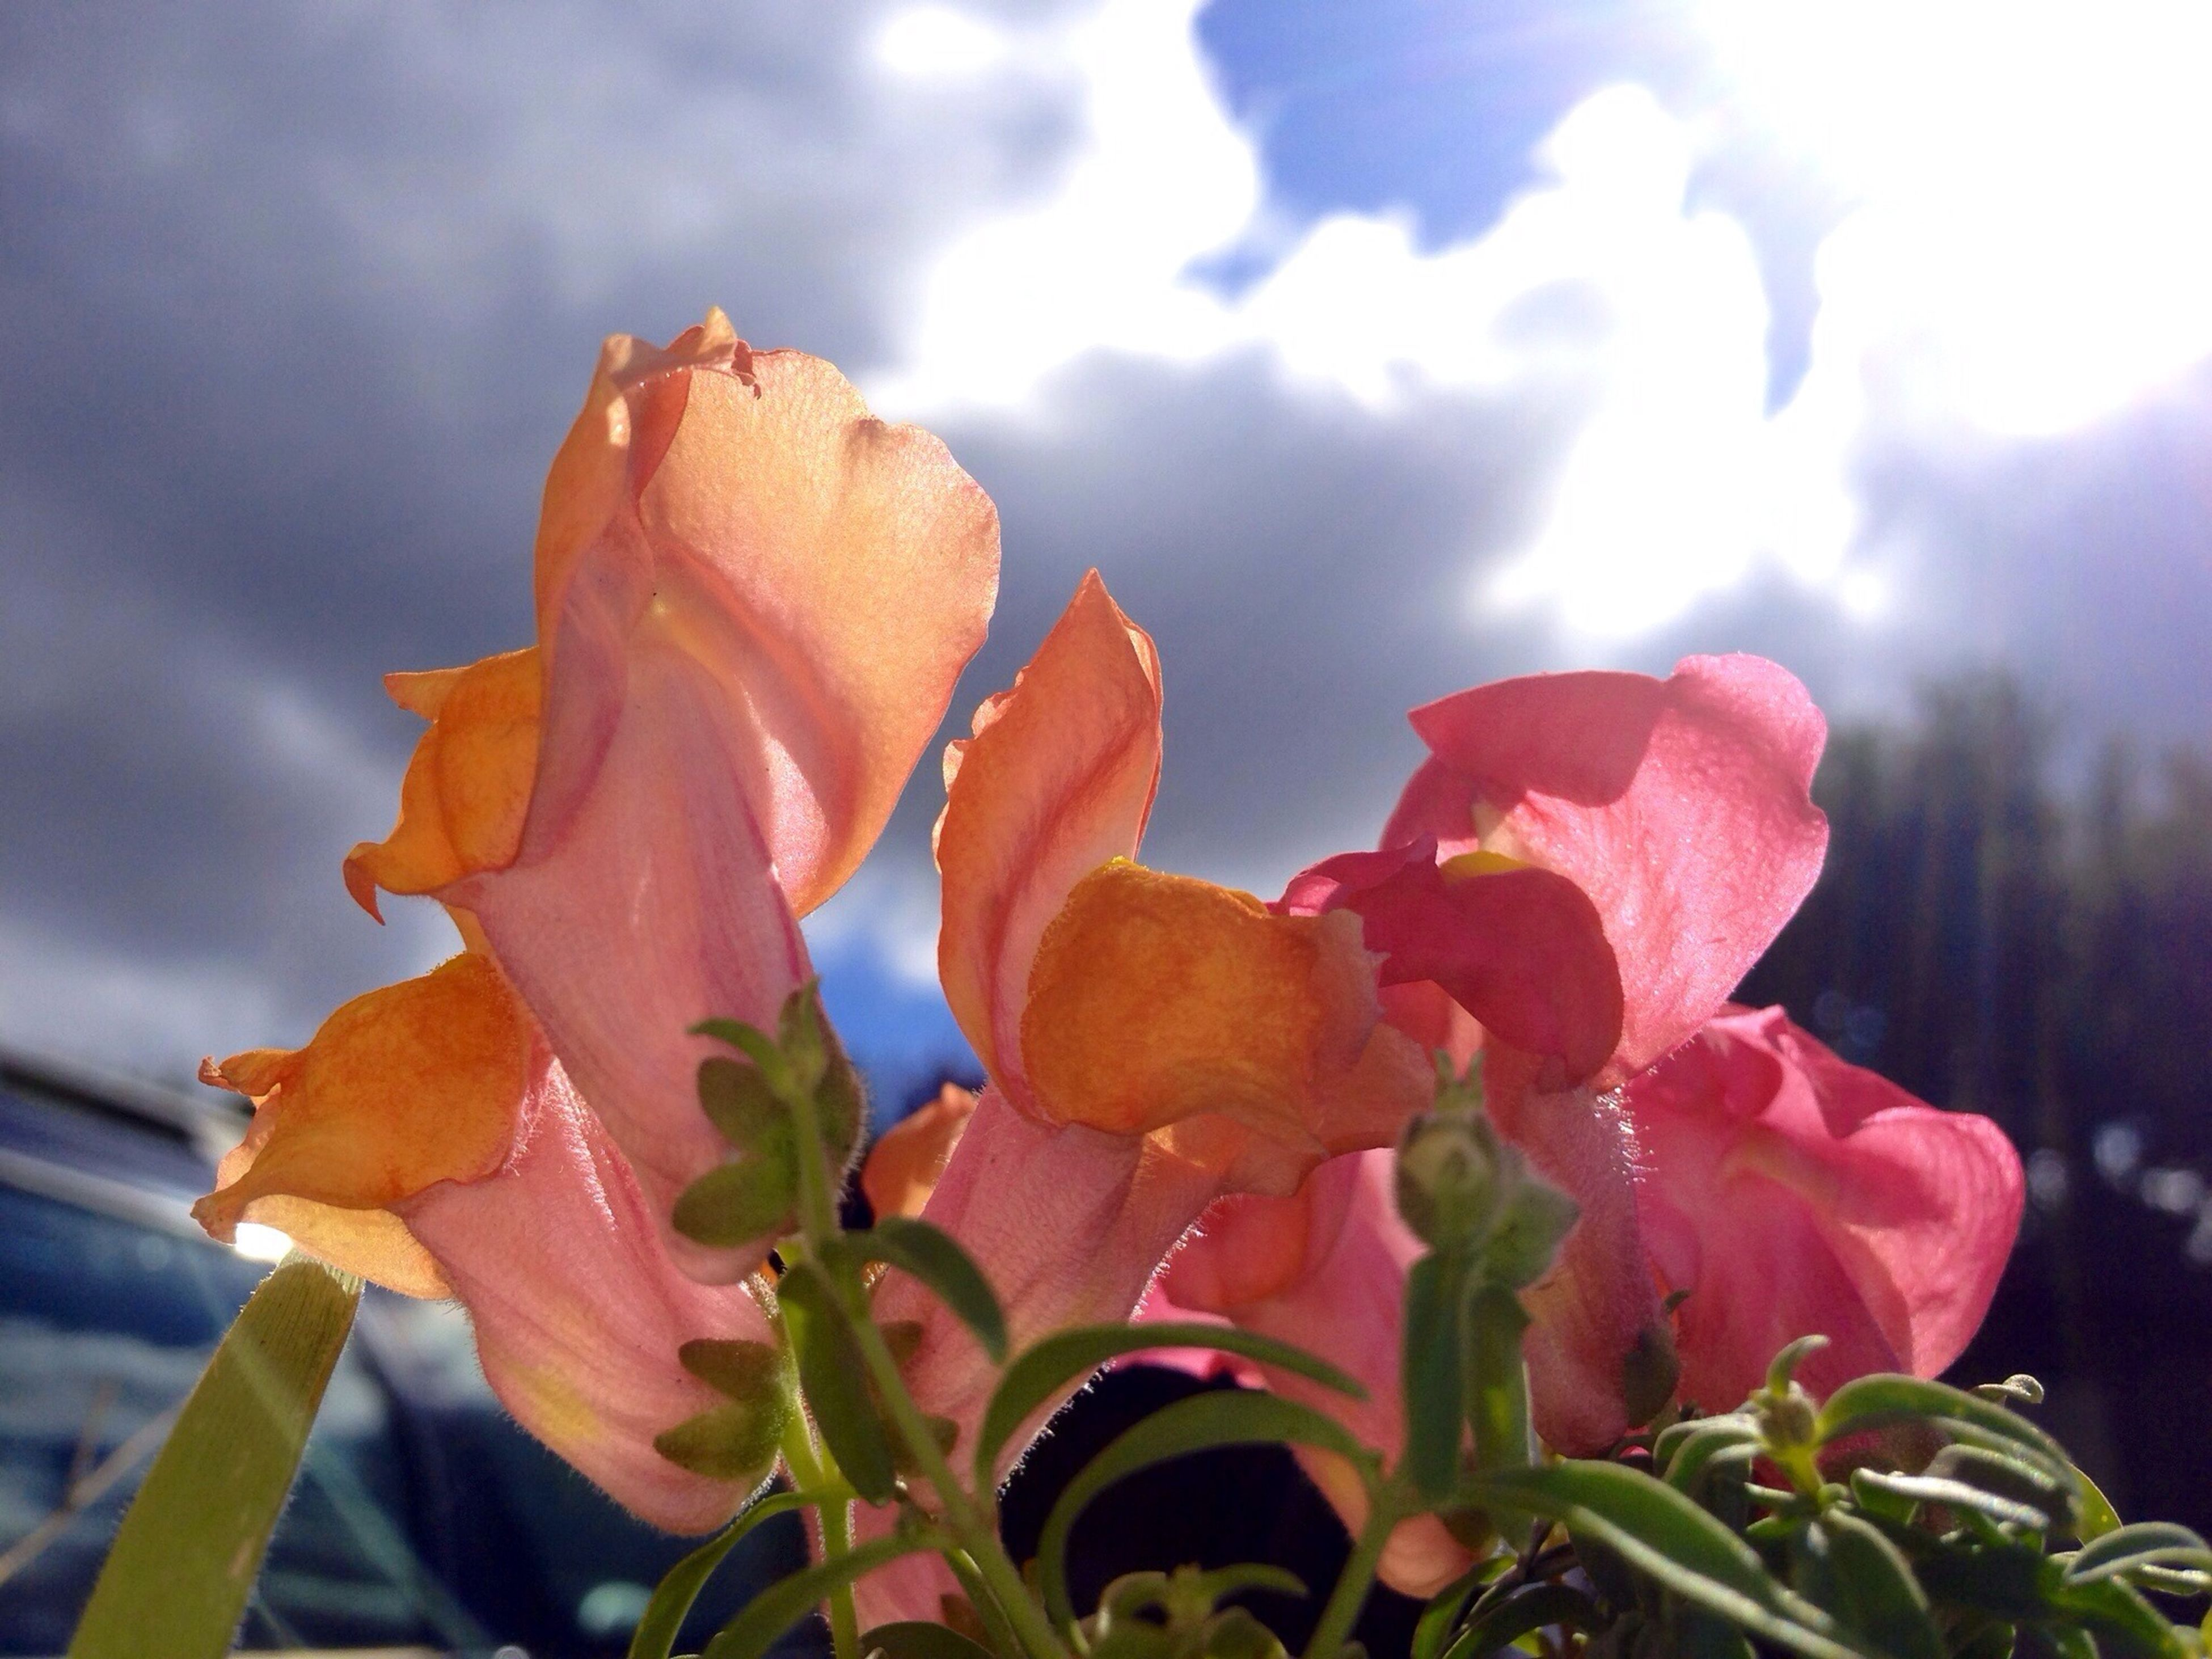 flower, fragility, petal, freshness, growth, sky, beauty in nature, focus on foreground, nature, close-up, plant, flower head, cloud - sky, blooming, leaf, outdoors, cloudy, day, season, stem